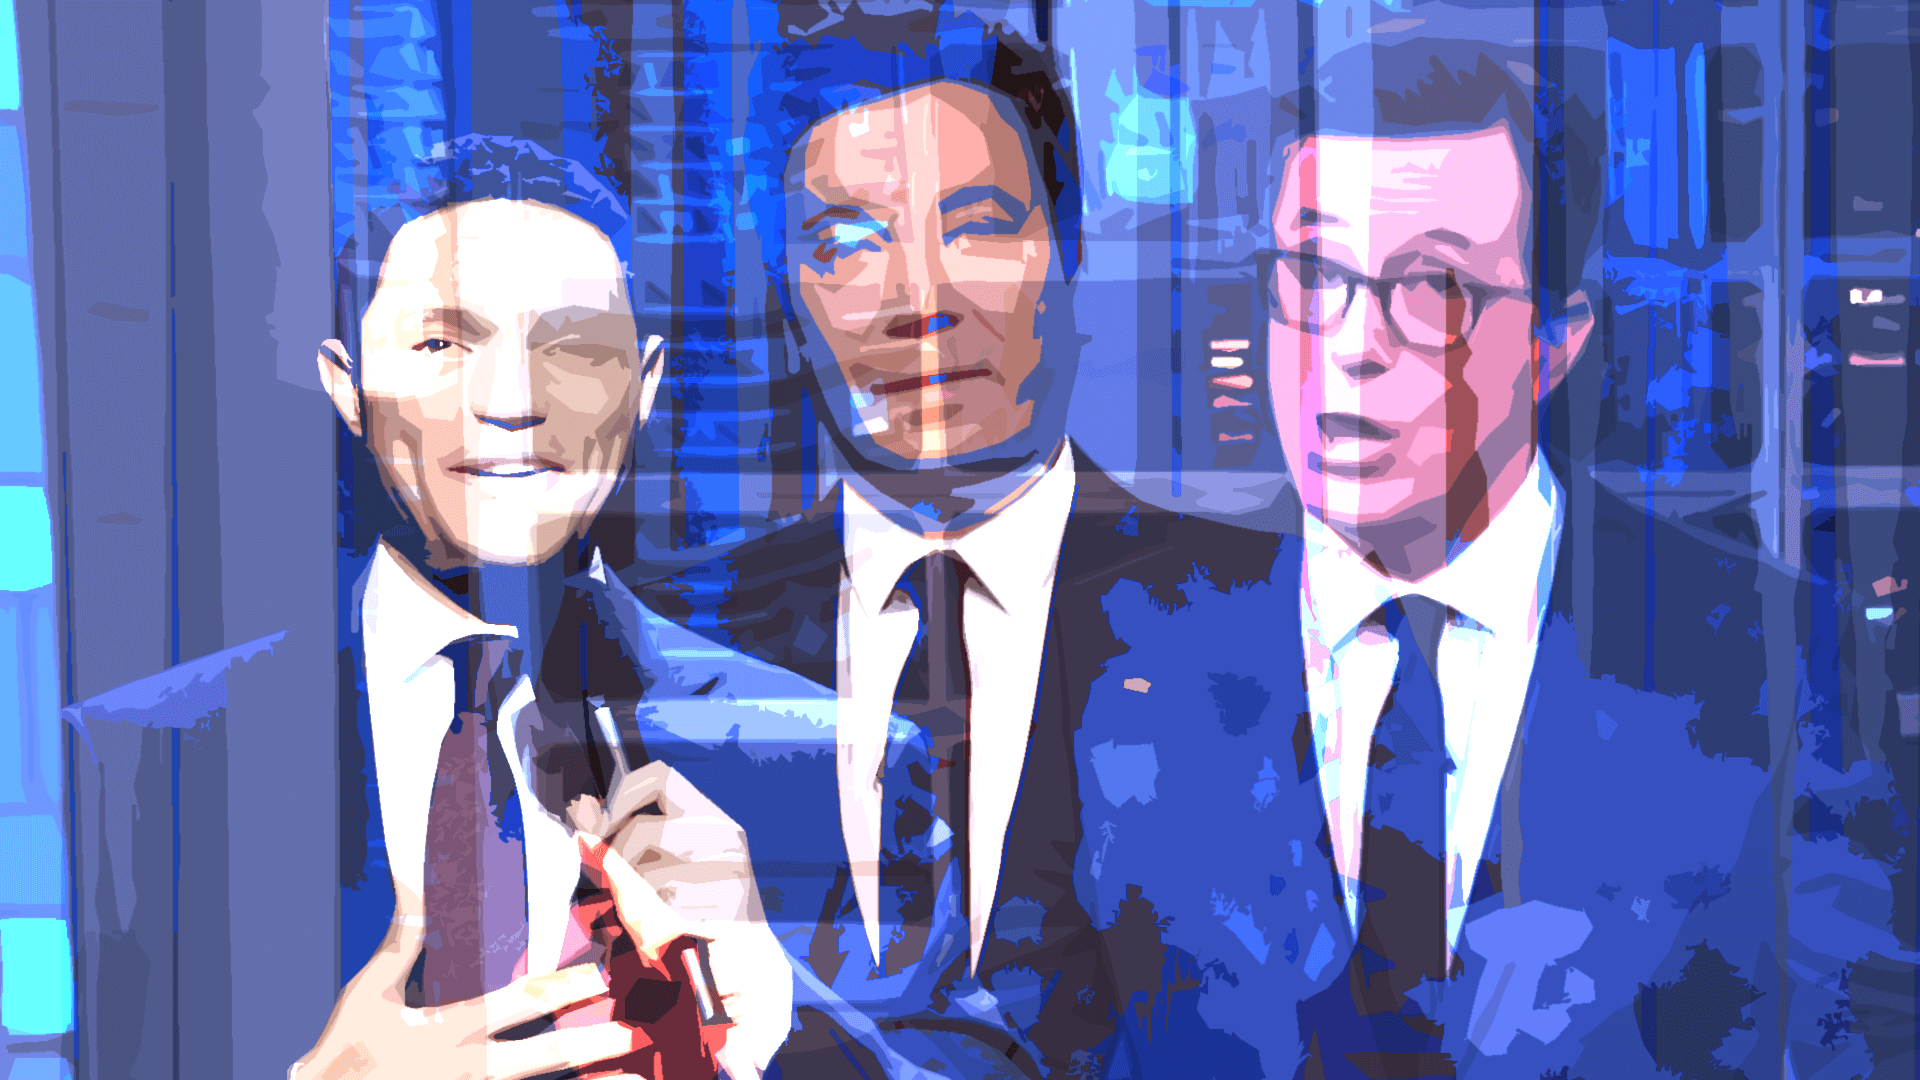 Not independent content creators: late night show hosts Stephen Colbert, Trevor Noah and Jimmy Fallon